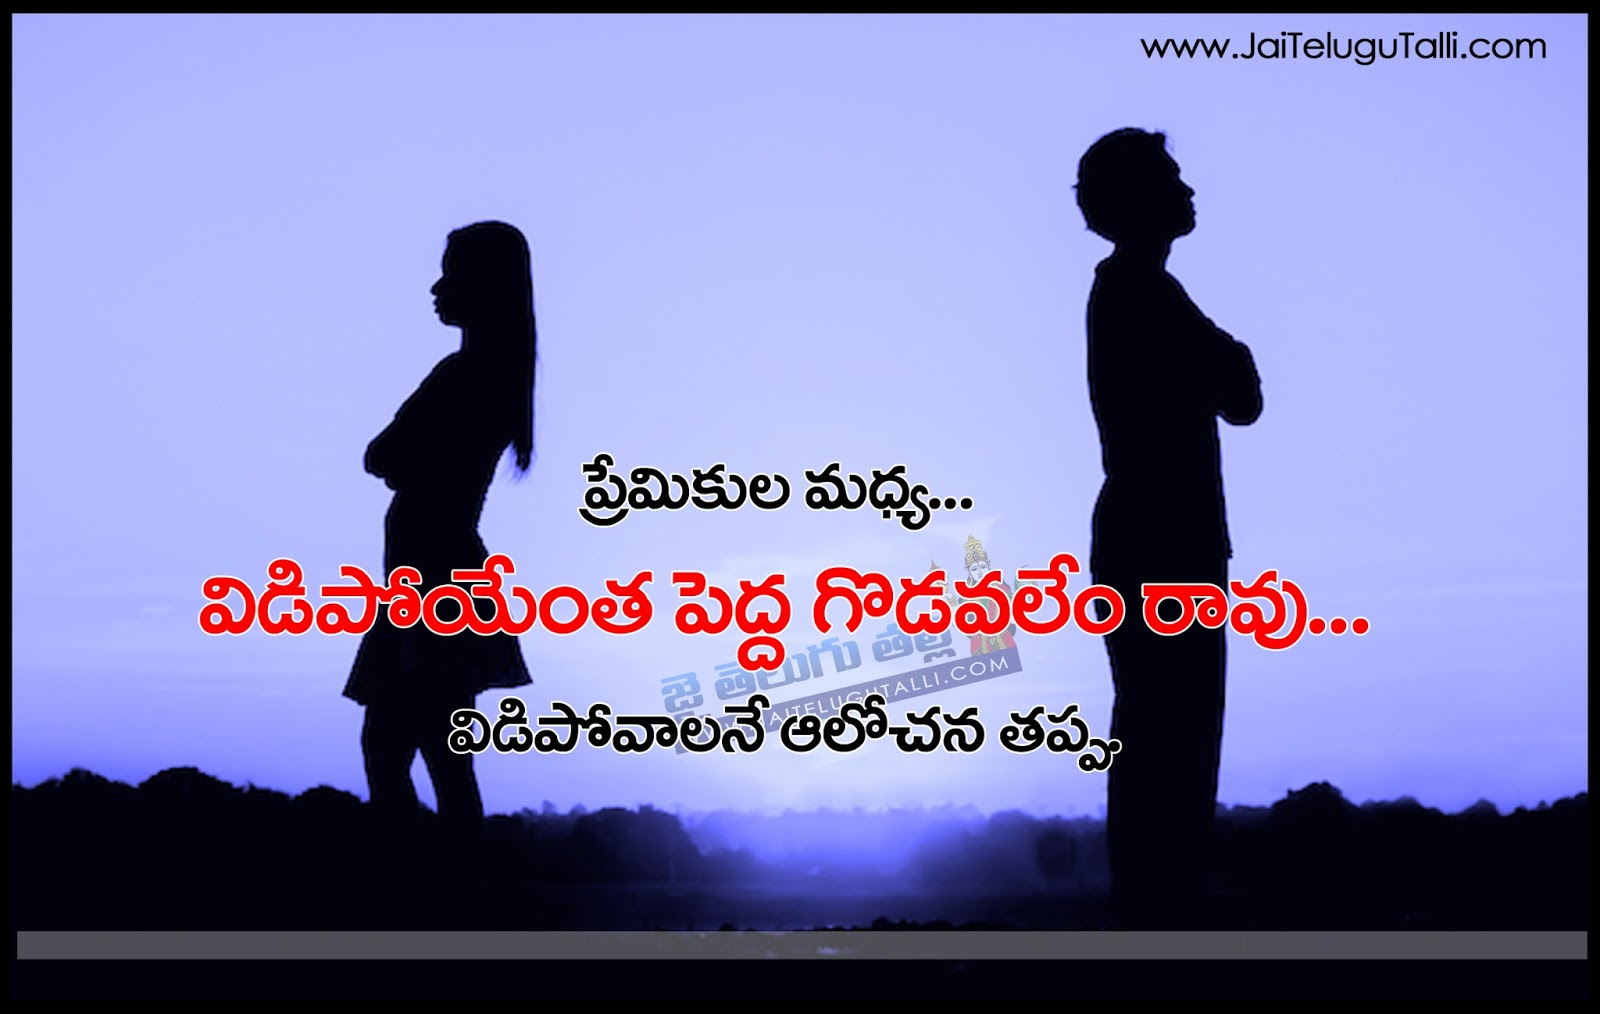 Telugu Love Quotes New Love Quotes In Telugu Hd Pictures Cute Heart Touching Love